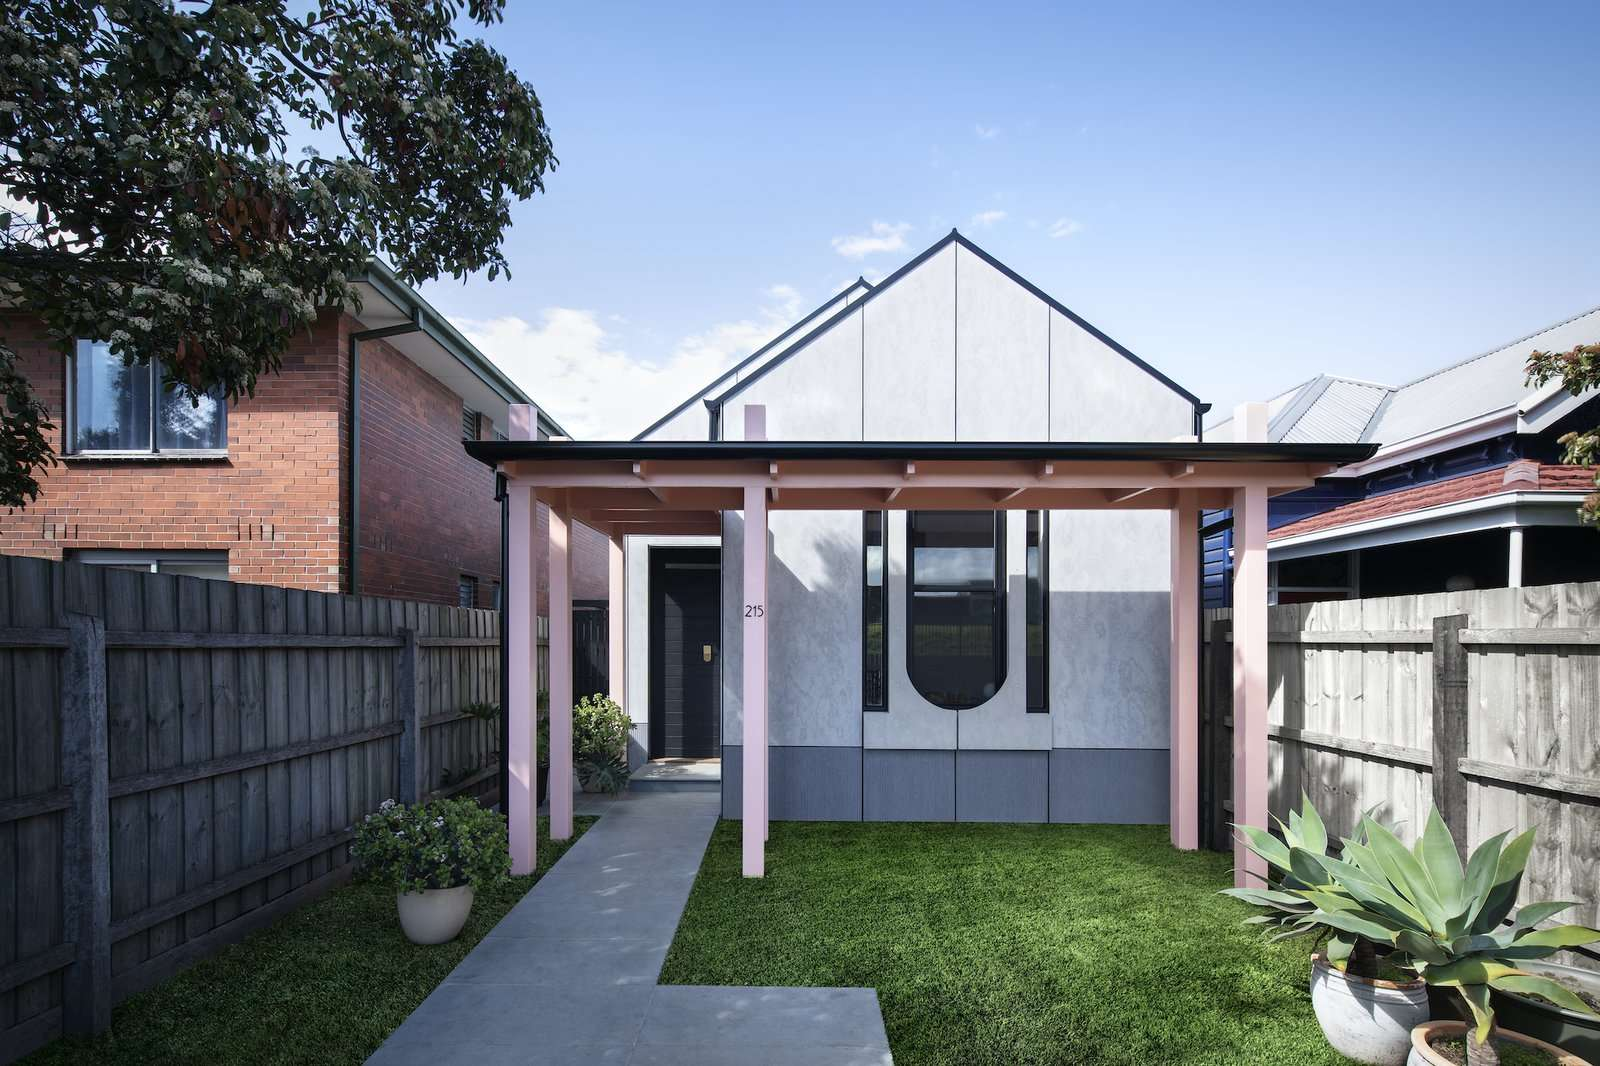 The form of the house references the original Edwardian dwelling. The vibrant color palette and graphic windows bring a sense of playfulness to the home.